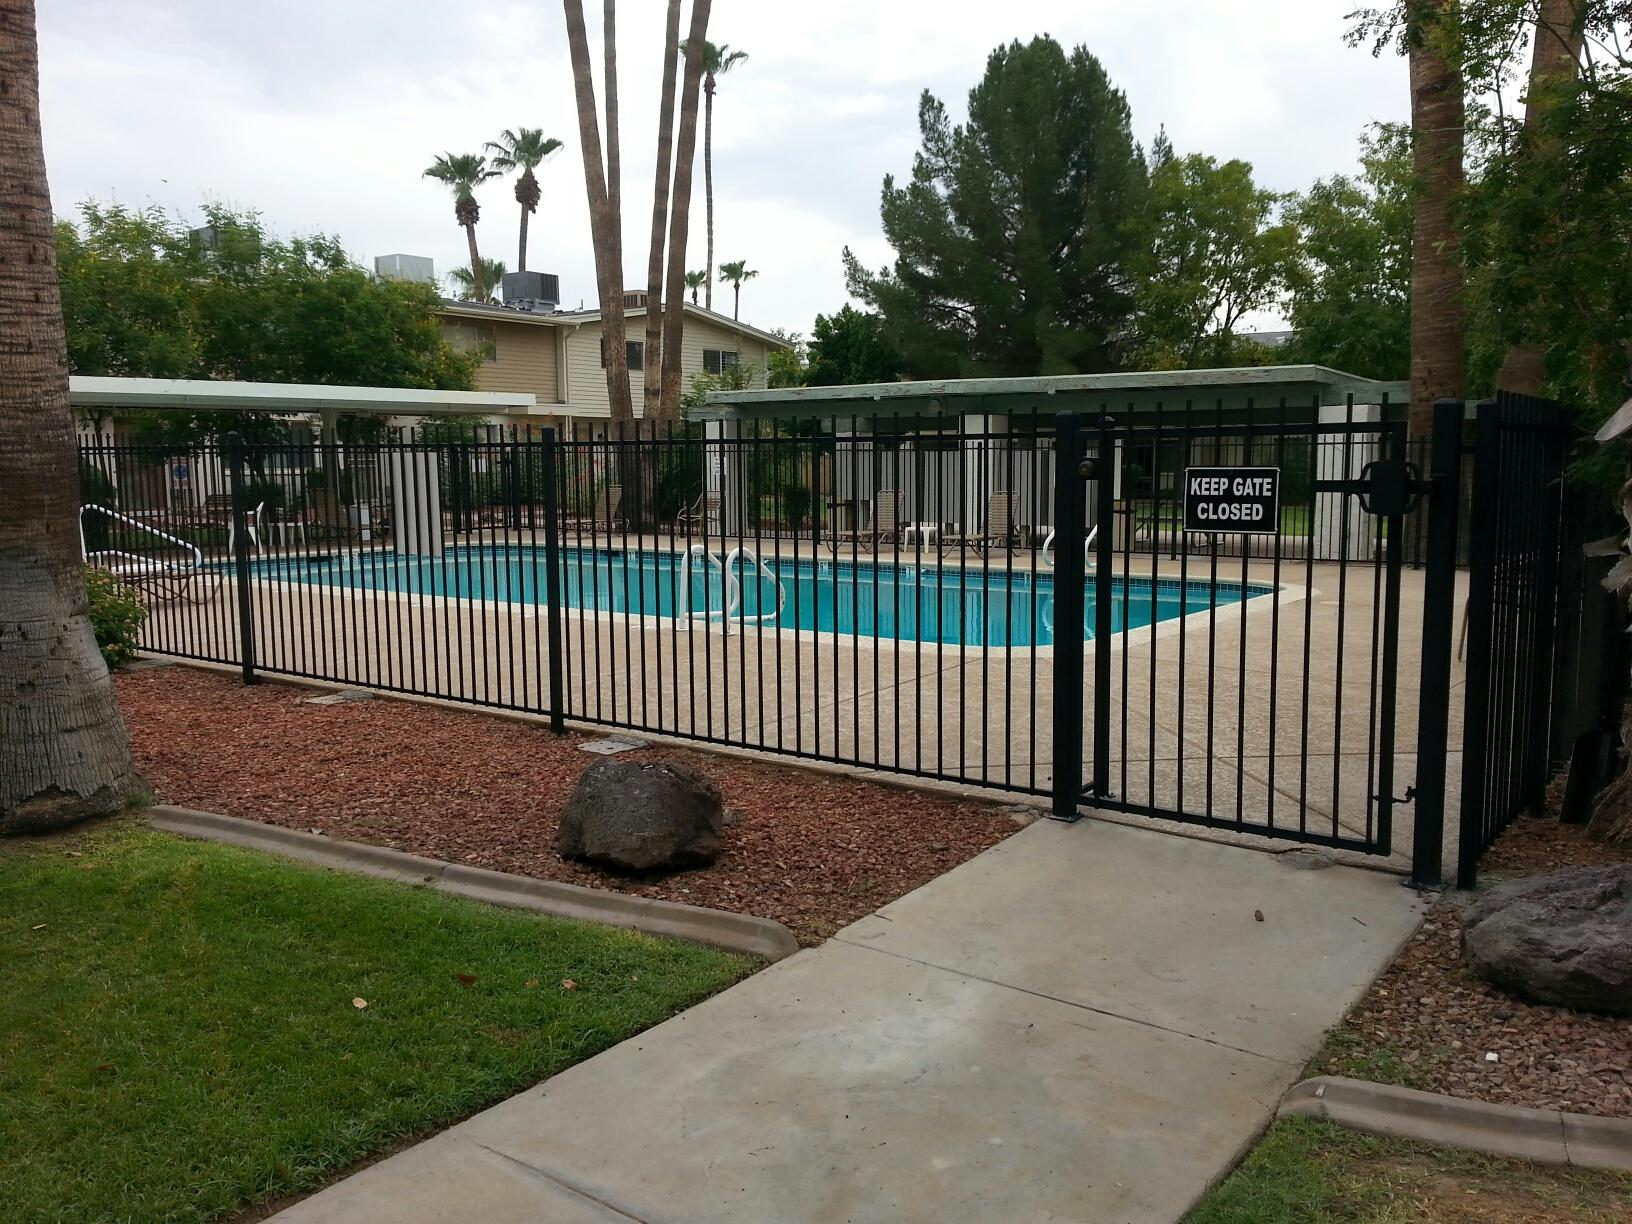 Effective Pool Barriers | Pool Fences and Gates | Drowning Prevention